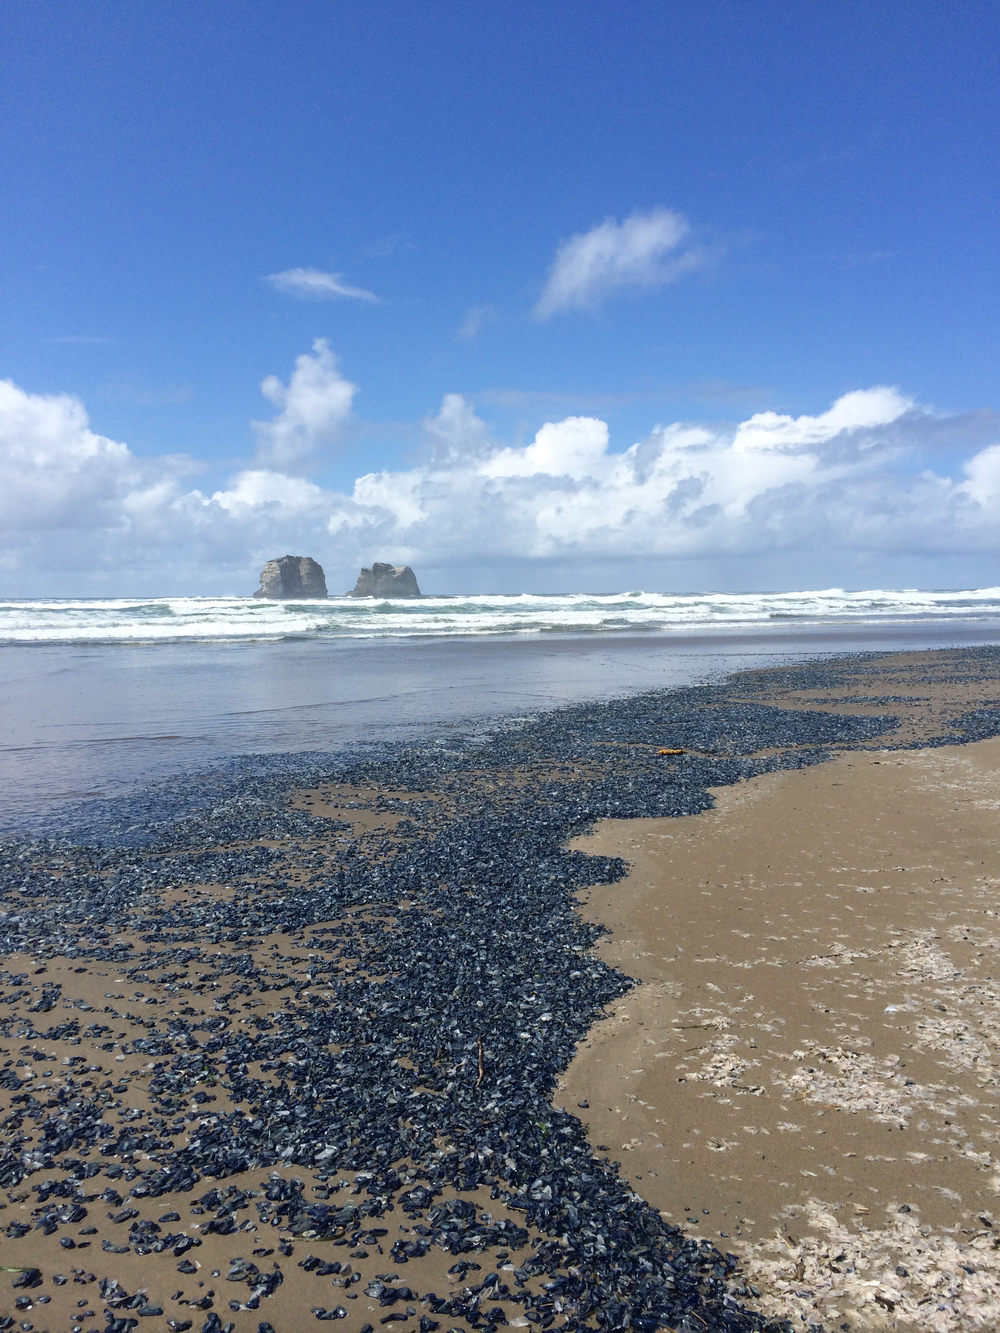 Field sampling in Neskowin, Oregon.